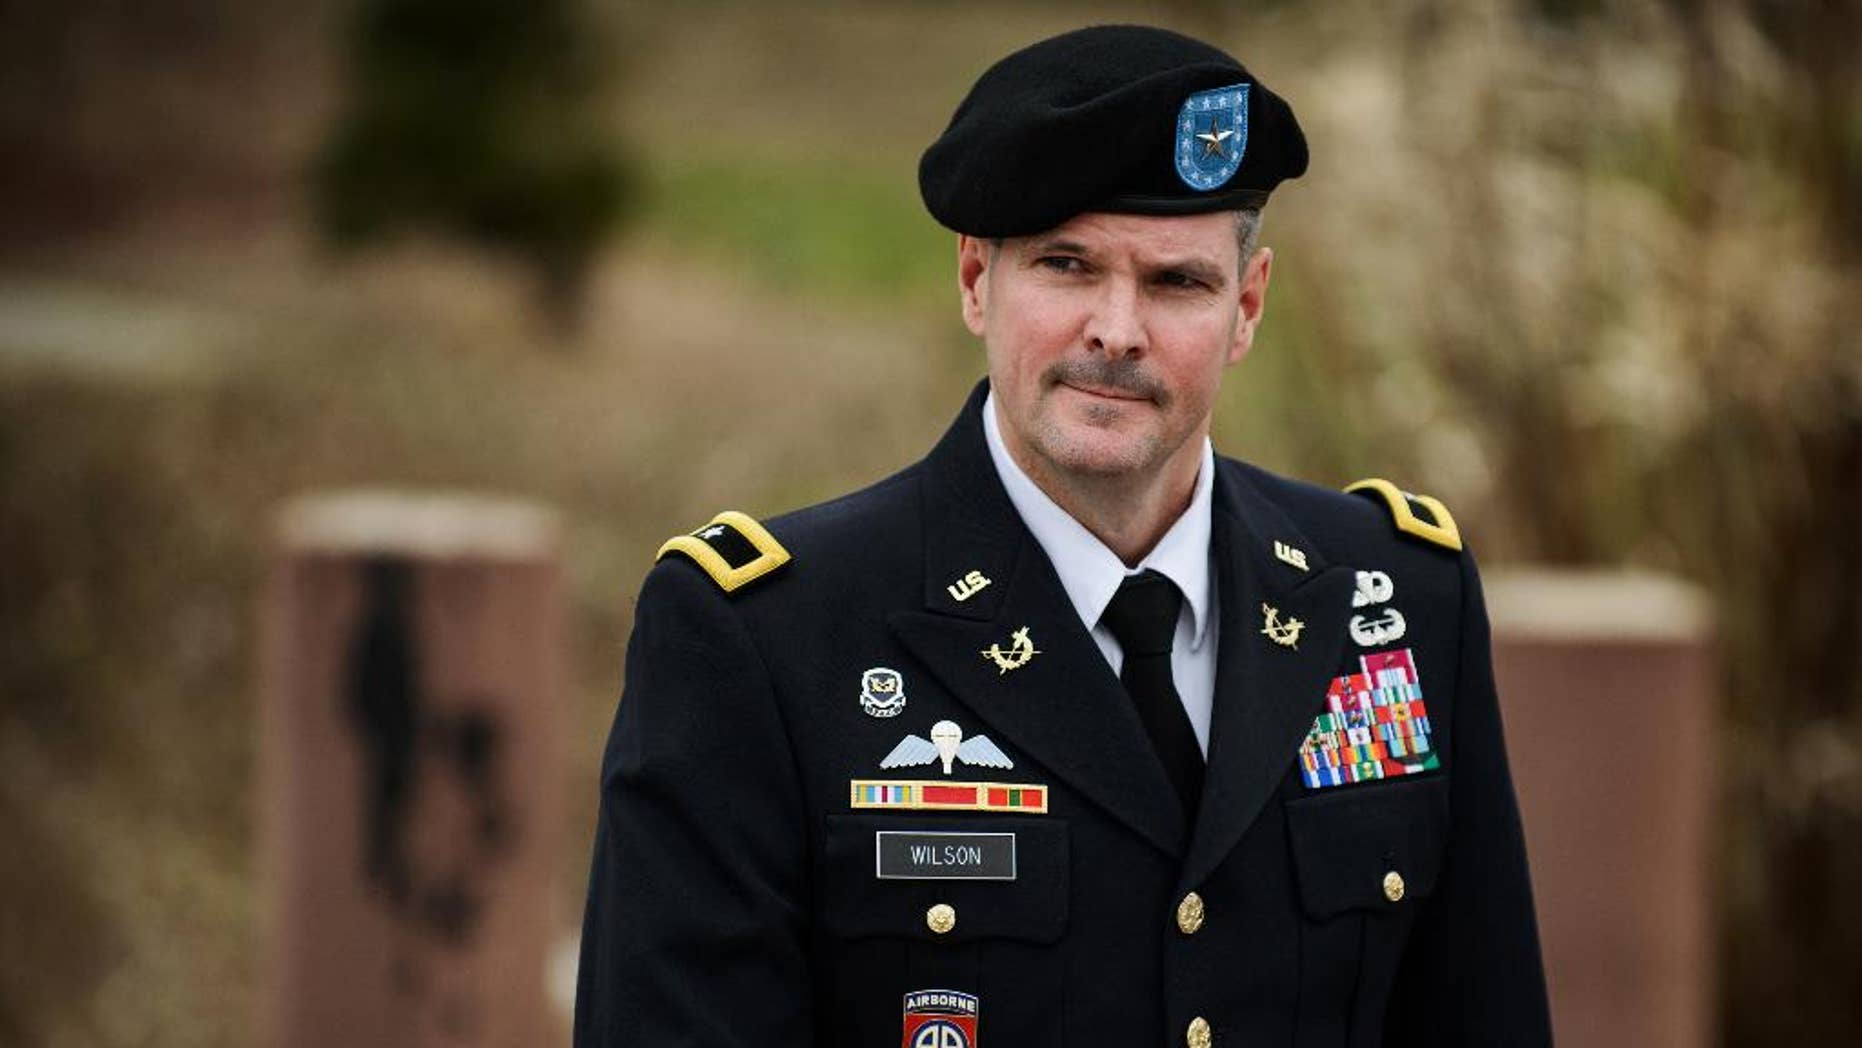 Brig. Gen. Paul Wilson leaves the courthouse after testifying in pretrial motions in the case of Brig. Gen. Jeffrey Sinclair, Tuesday, March 4, 2014, at Fort Bragg, N.C. Less than a month before Sinclair's trial on sexual assault charges, the lead prosecutor broke down in tears Tuesday as he told a superior he believed the primary accuser in the case had lied under oath. (AP Photo/The Fayetteville Observer, James Robinson)